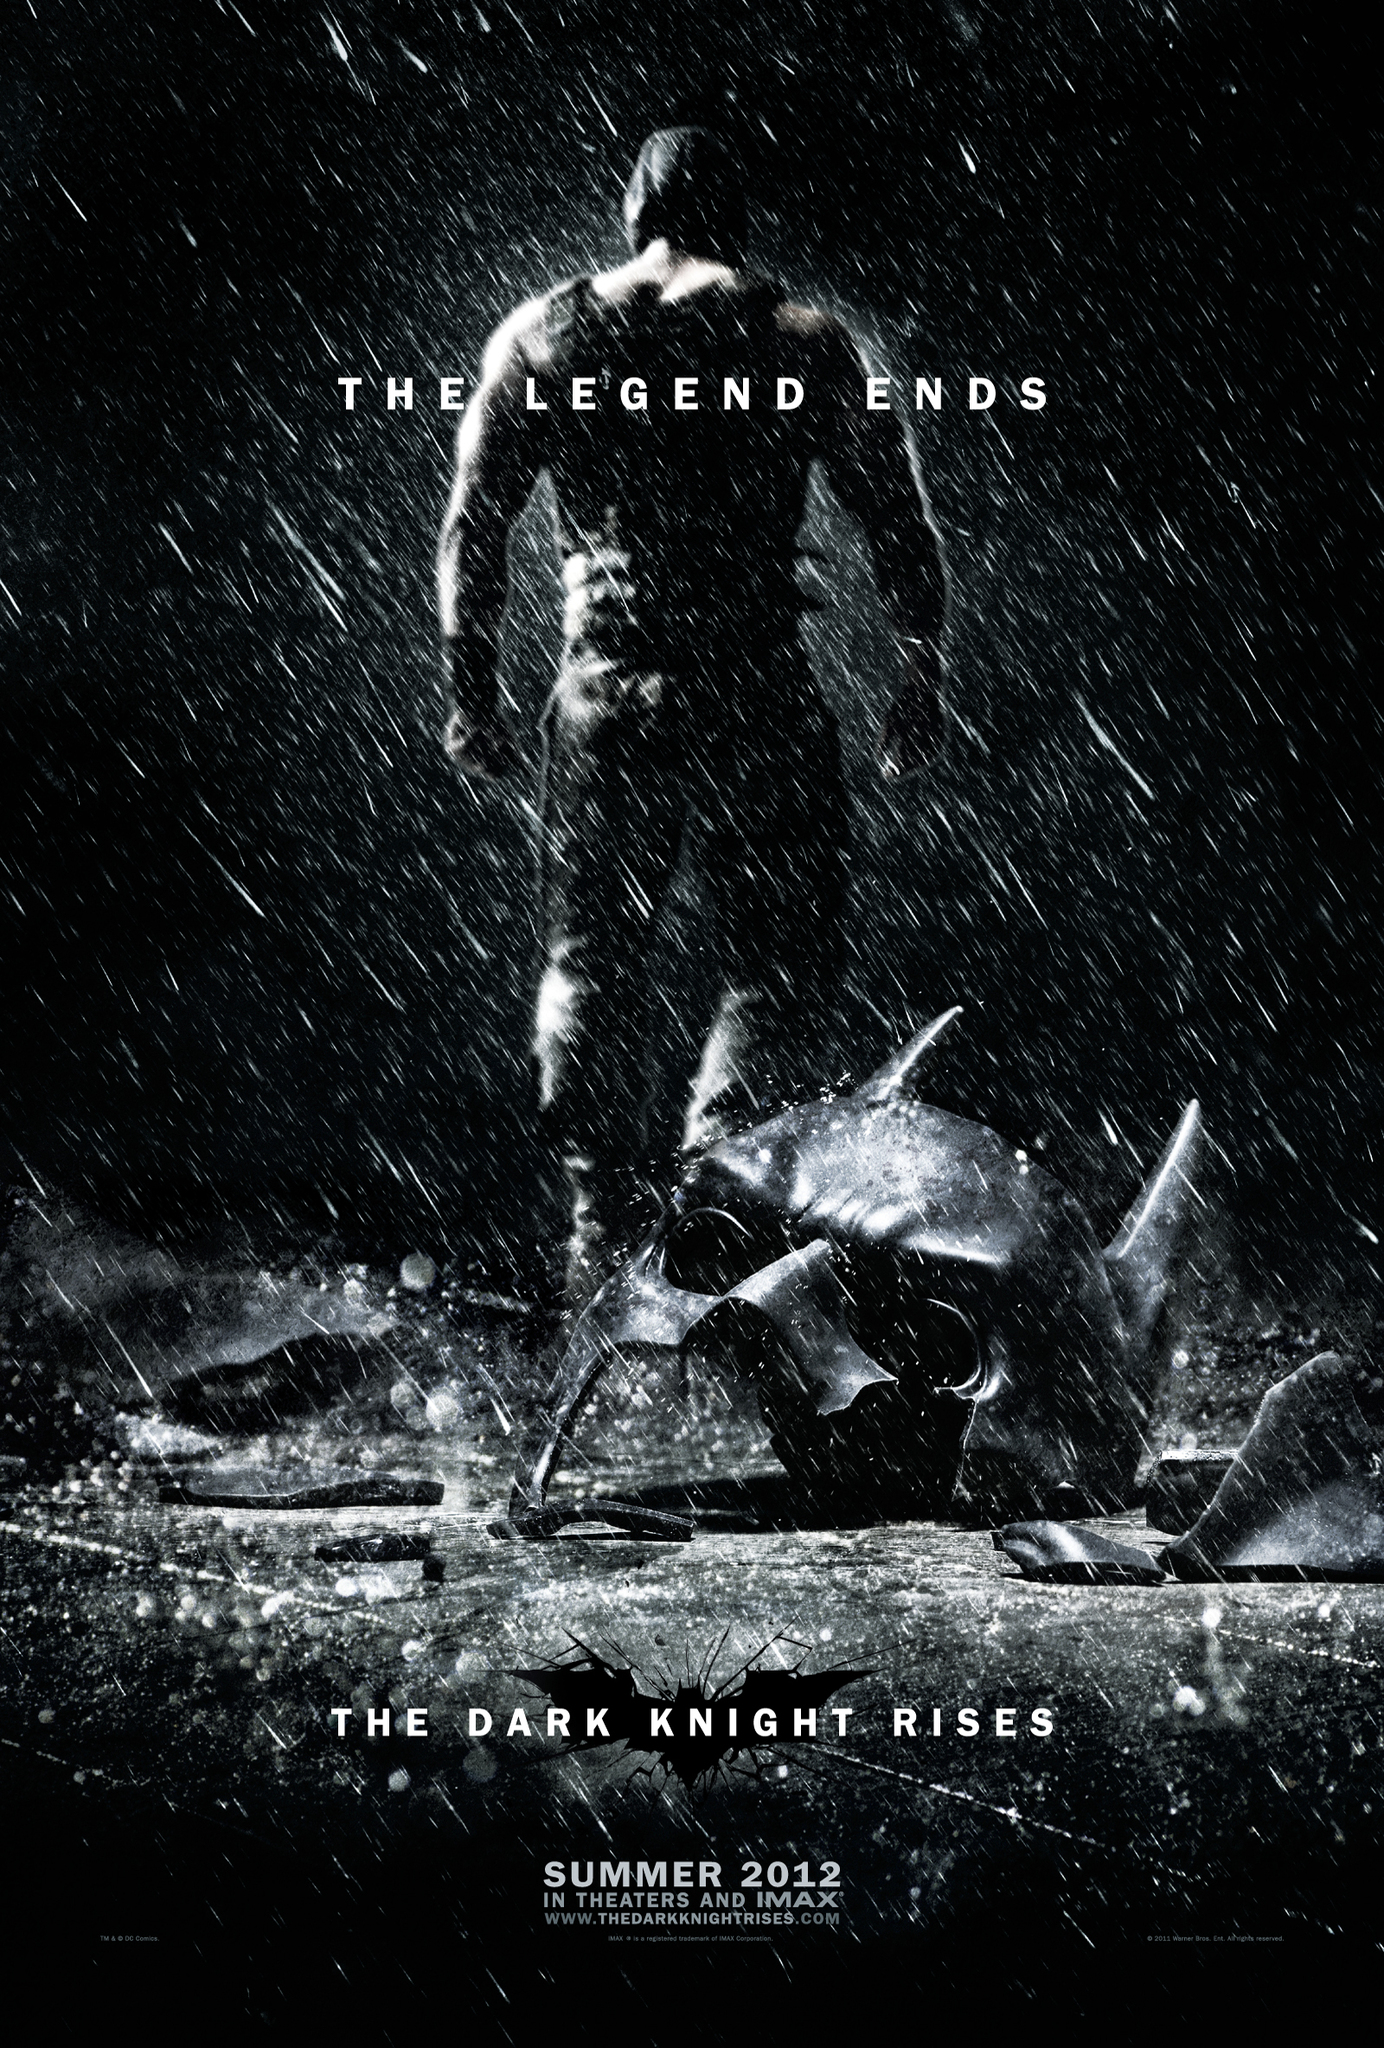 The Dark Knight rises (2012) de Christopher Nolan : Batman en pleine course-poursuite (HD)